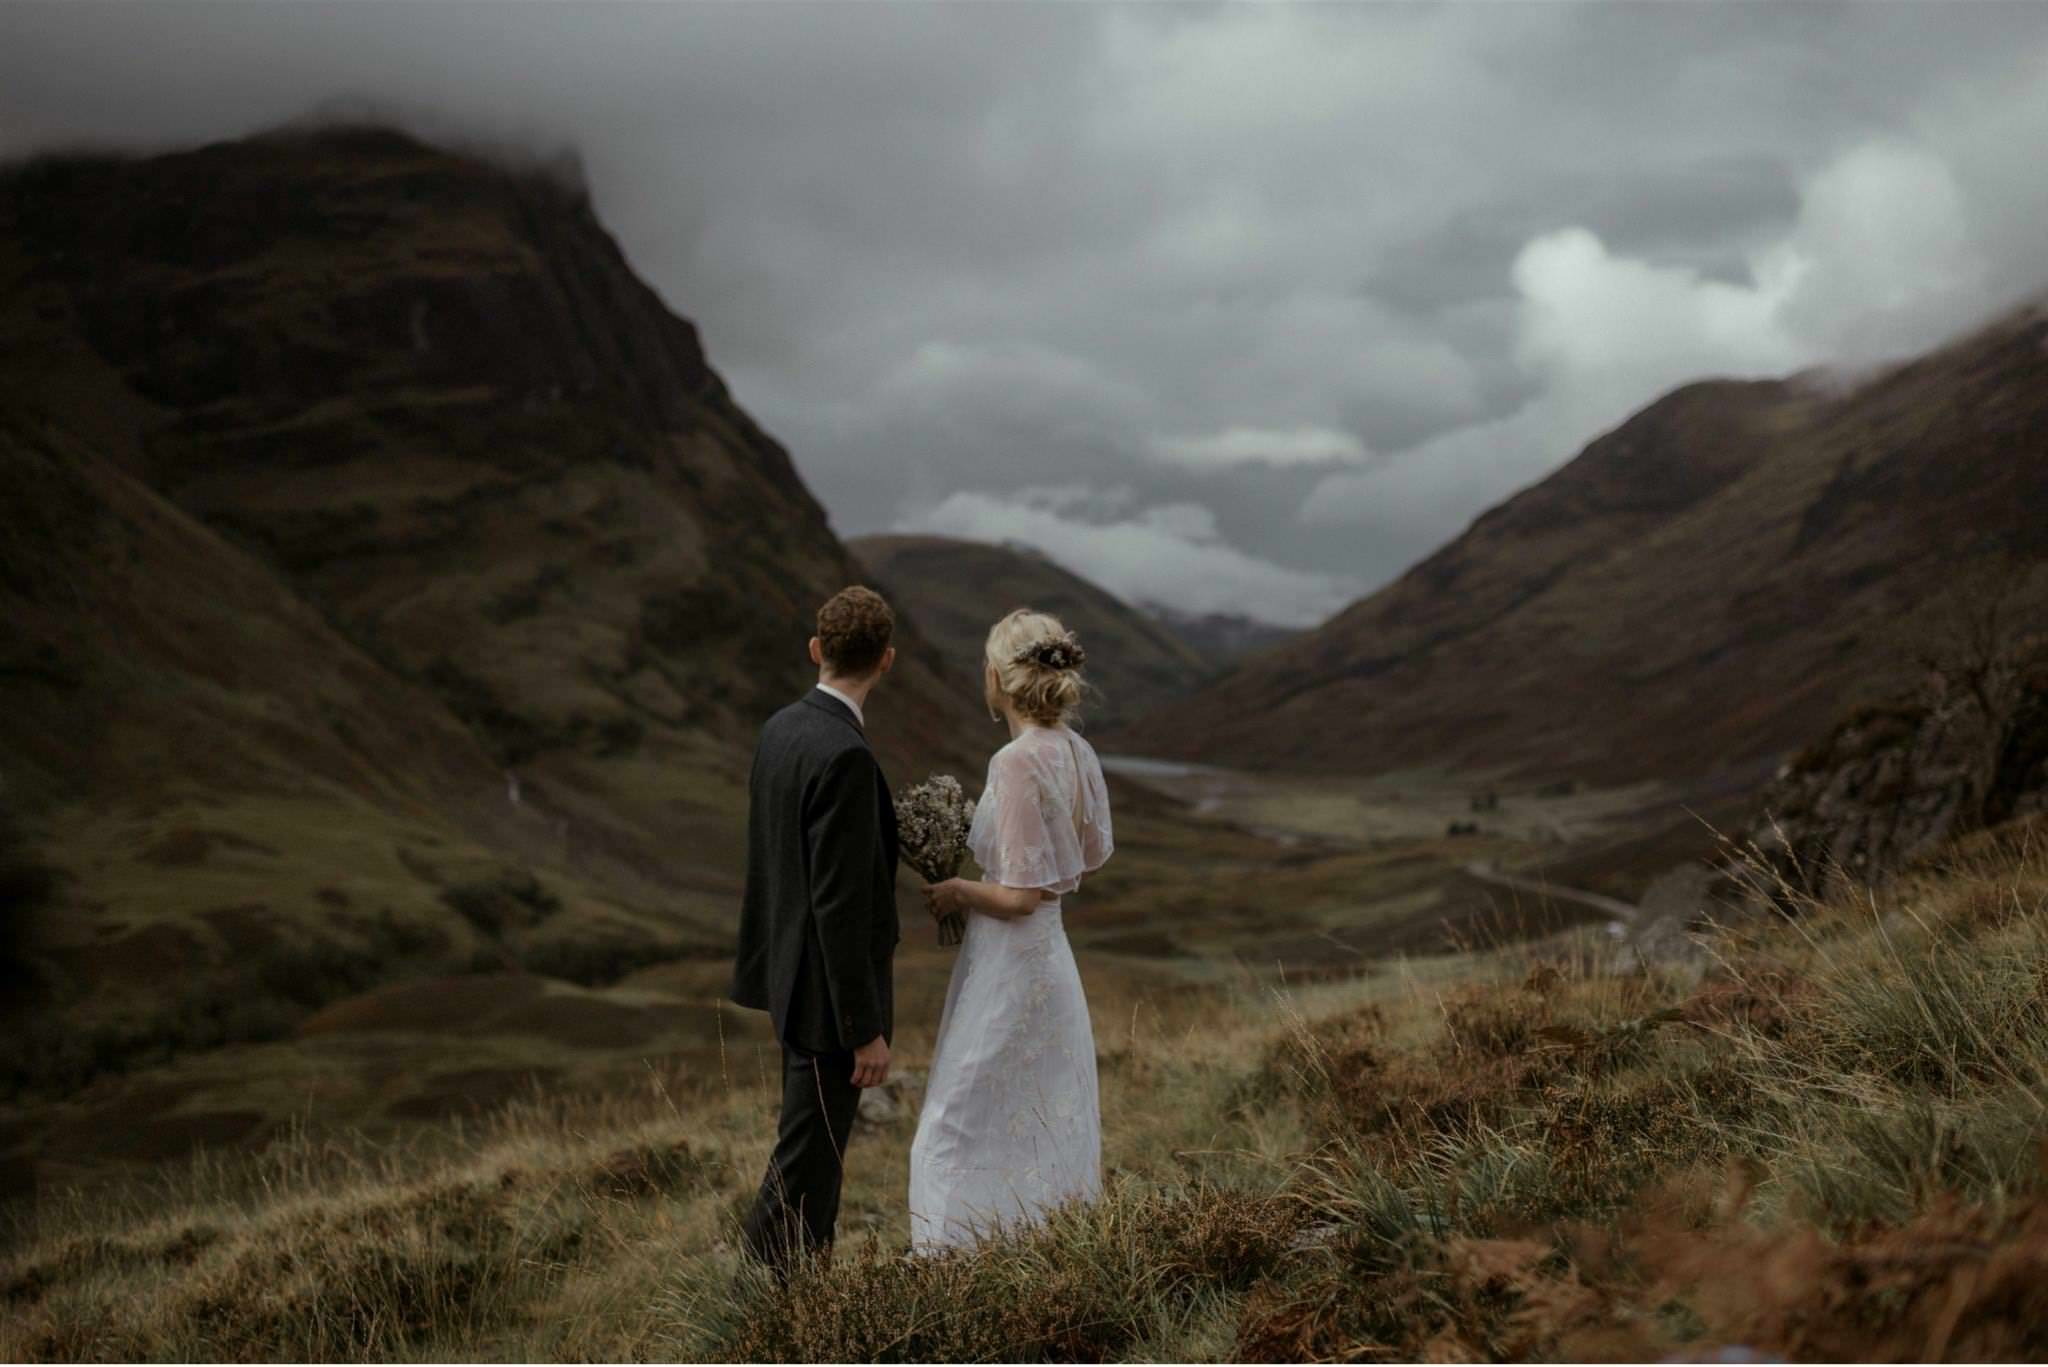 Bride and groom at a Glencoe elopement wedding for two in Scotland